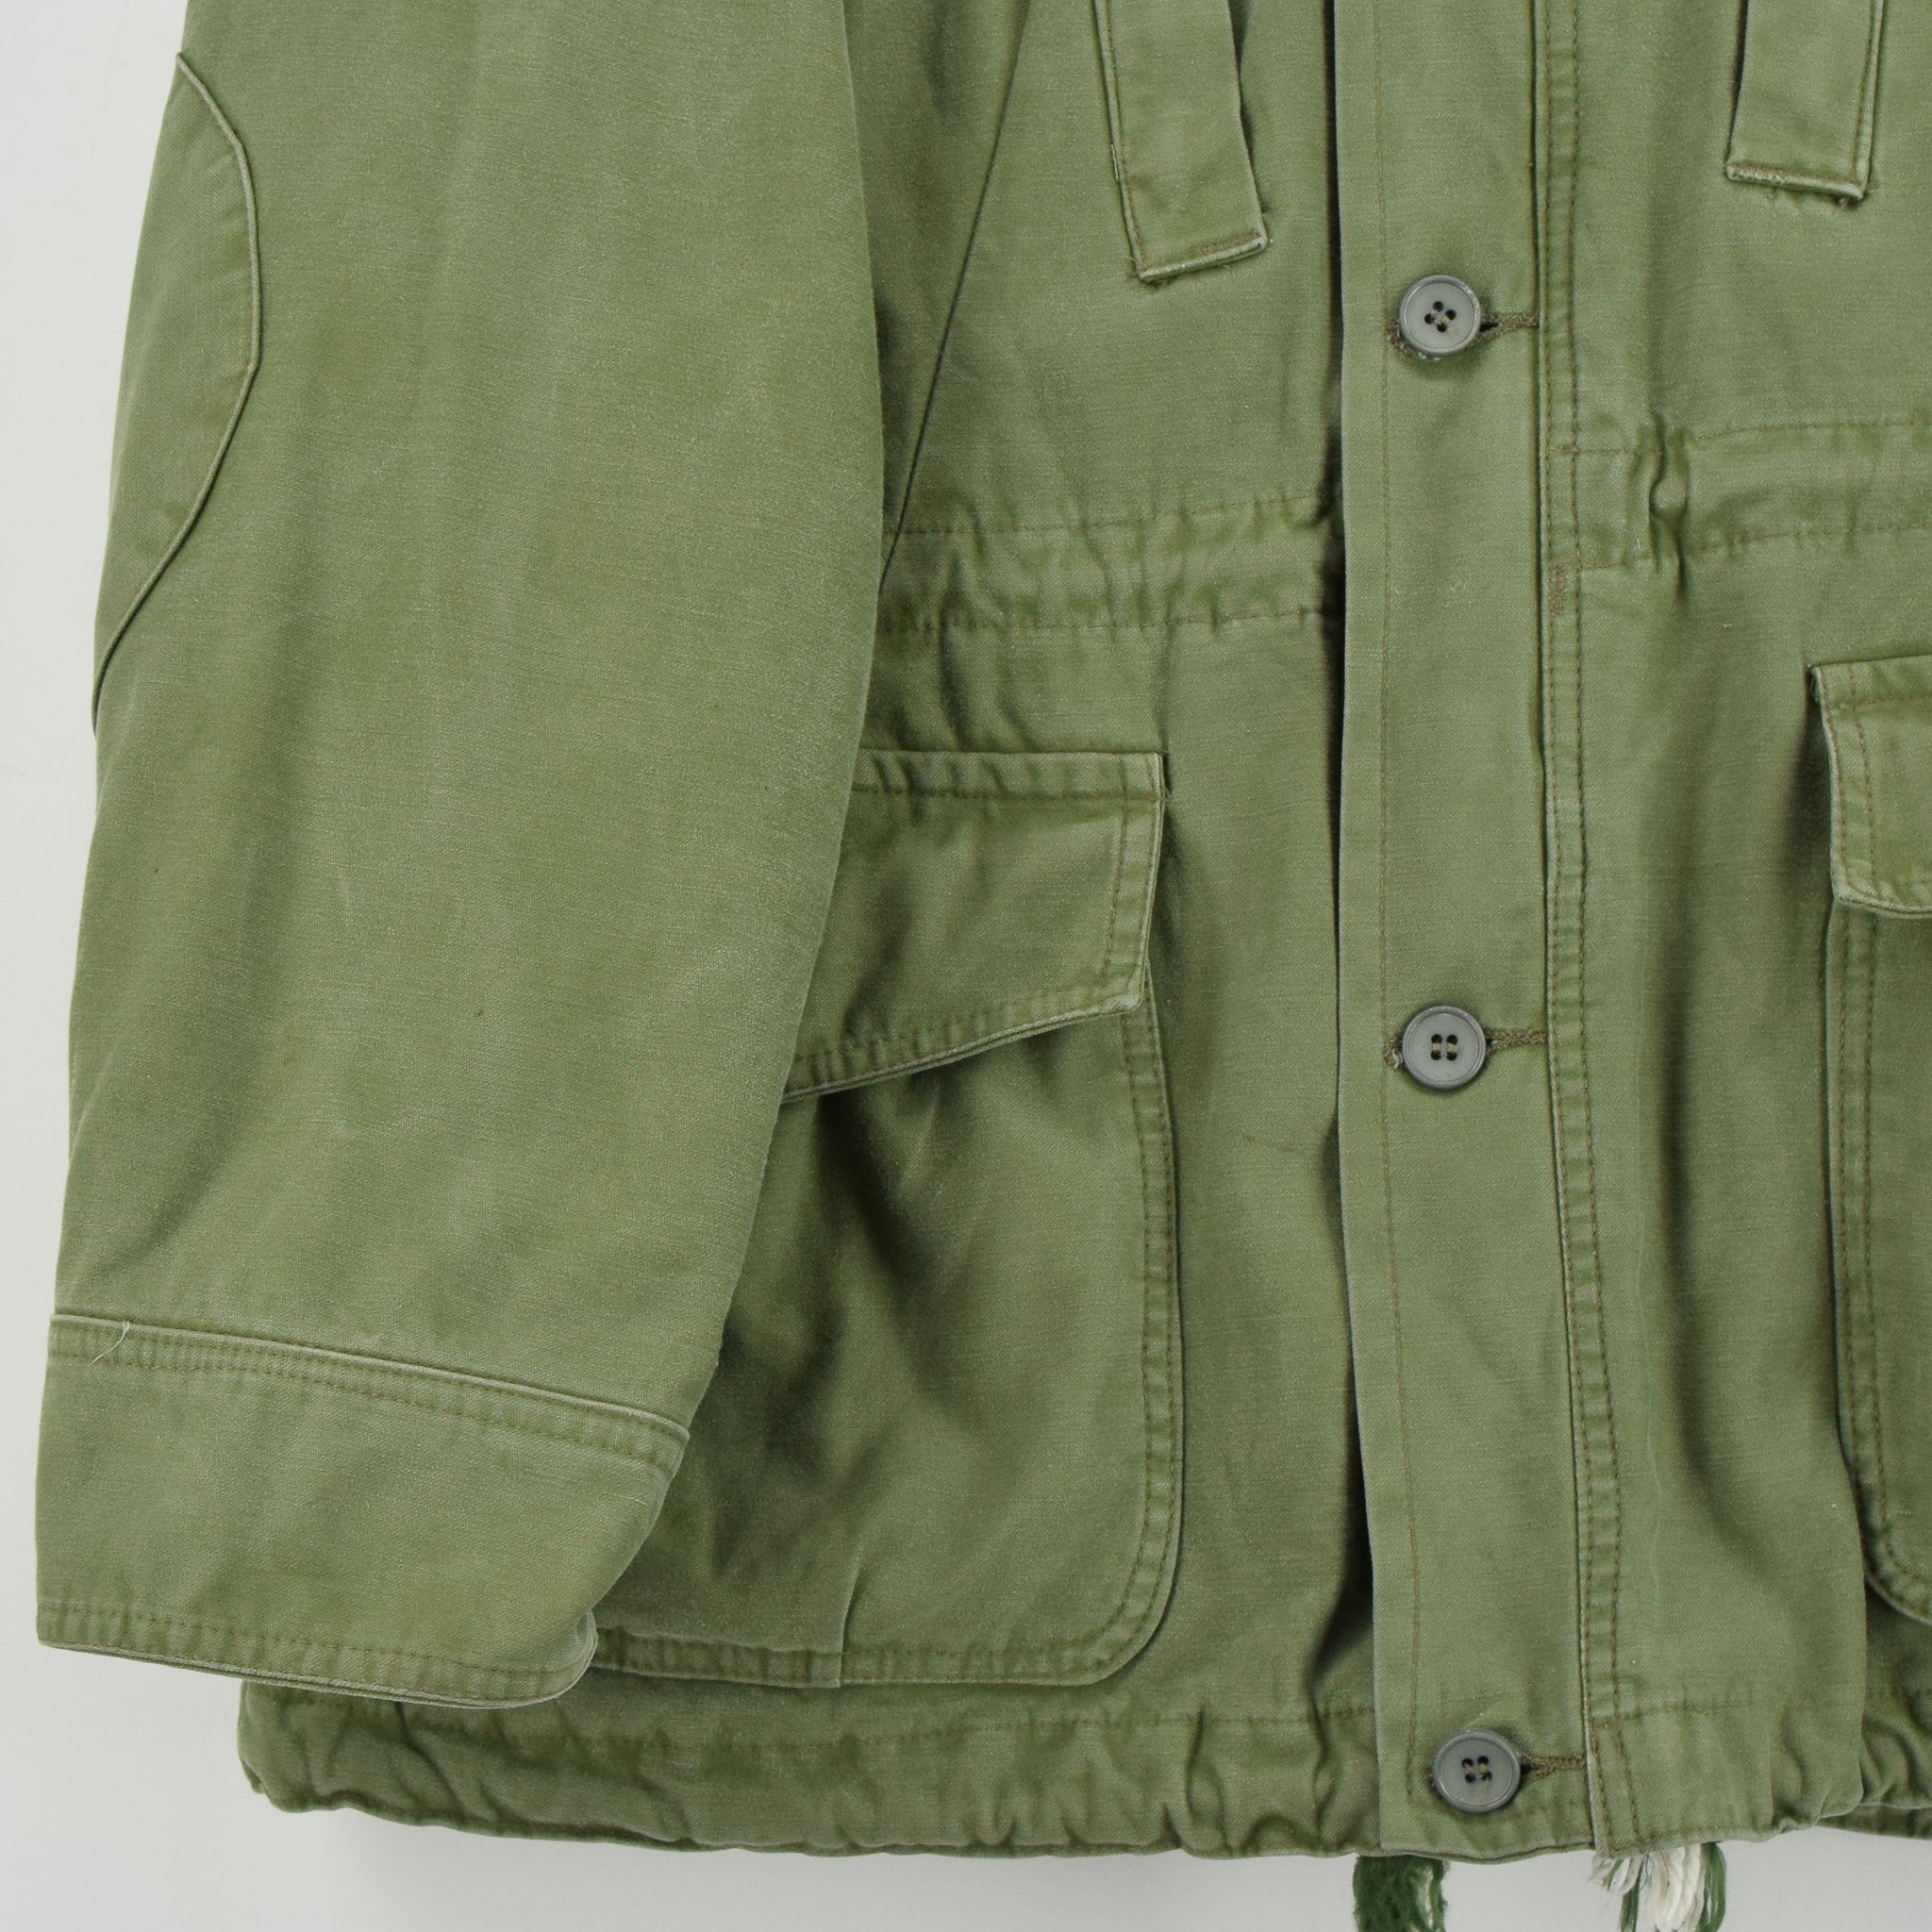 Vintage 90s Irish Army Combat Tunic Field Jacket Green Made in Ireland M front hem